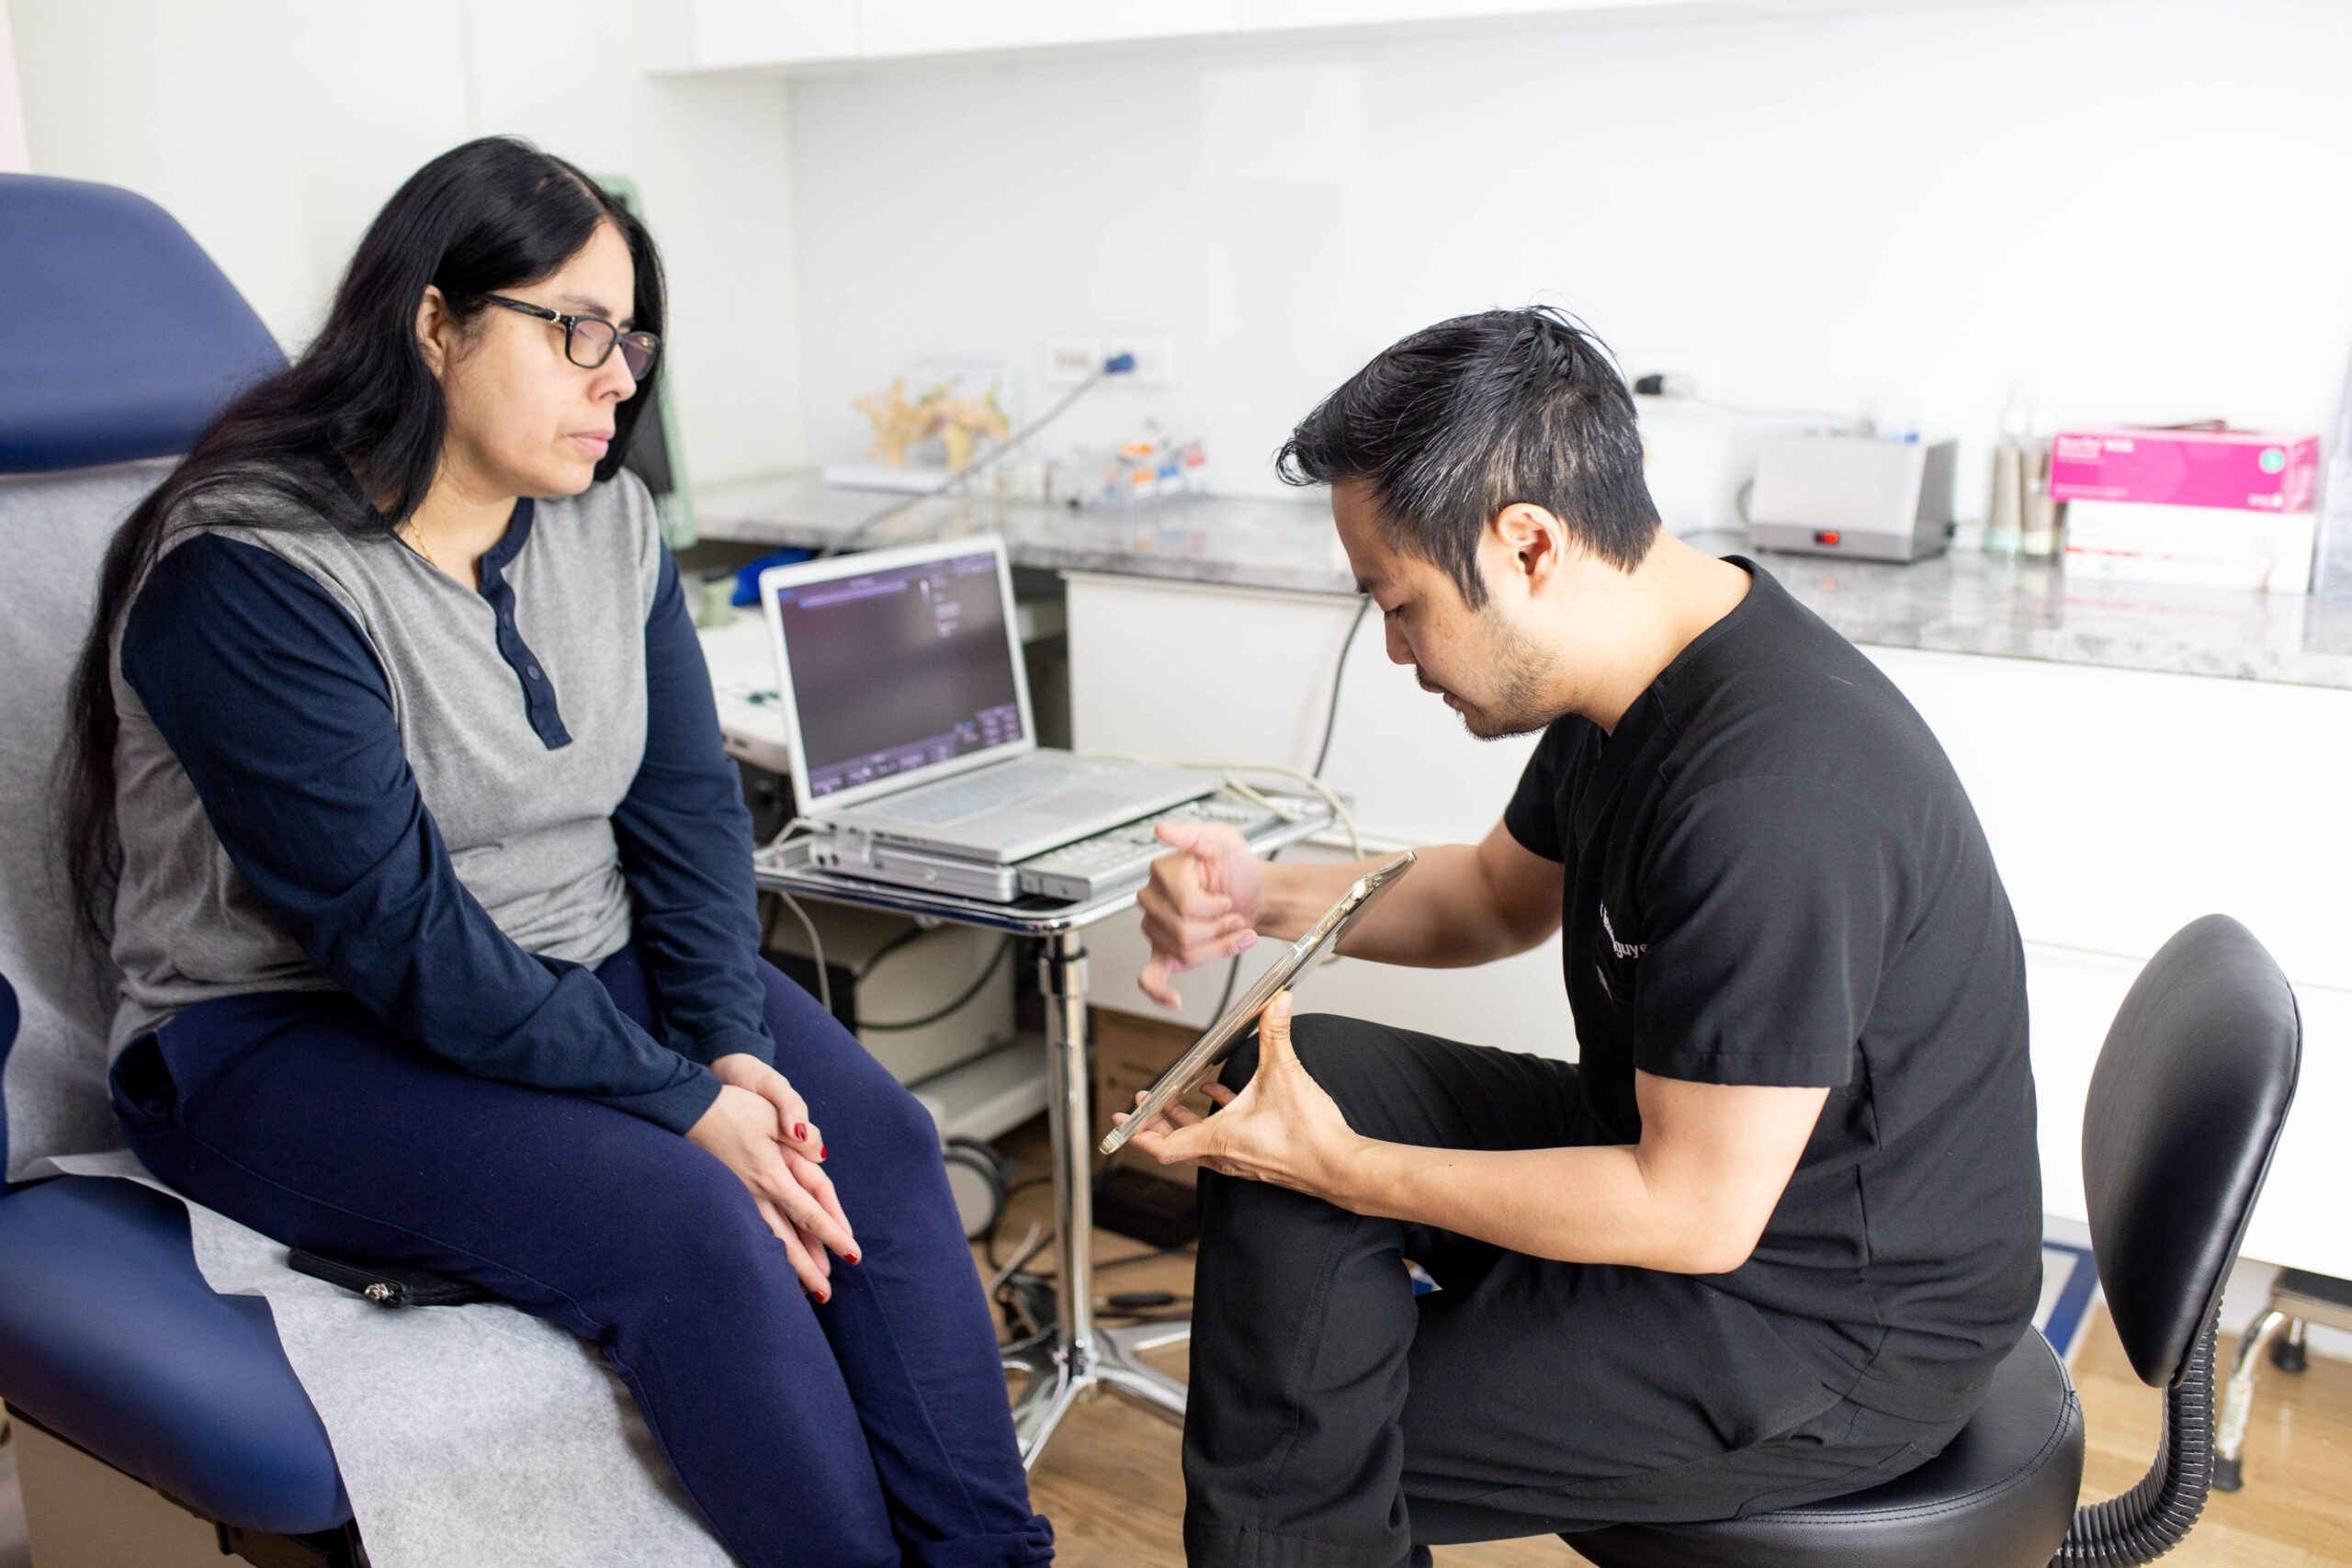 Do you want to look better, feel better, and receive better care? Choose the vein center in NY known for doing everything better. Here are 8 advantages we provide.